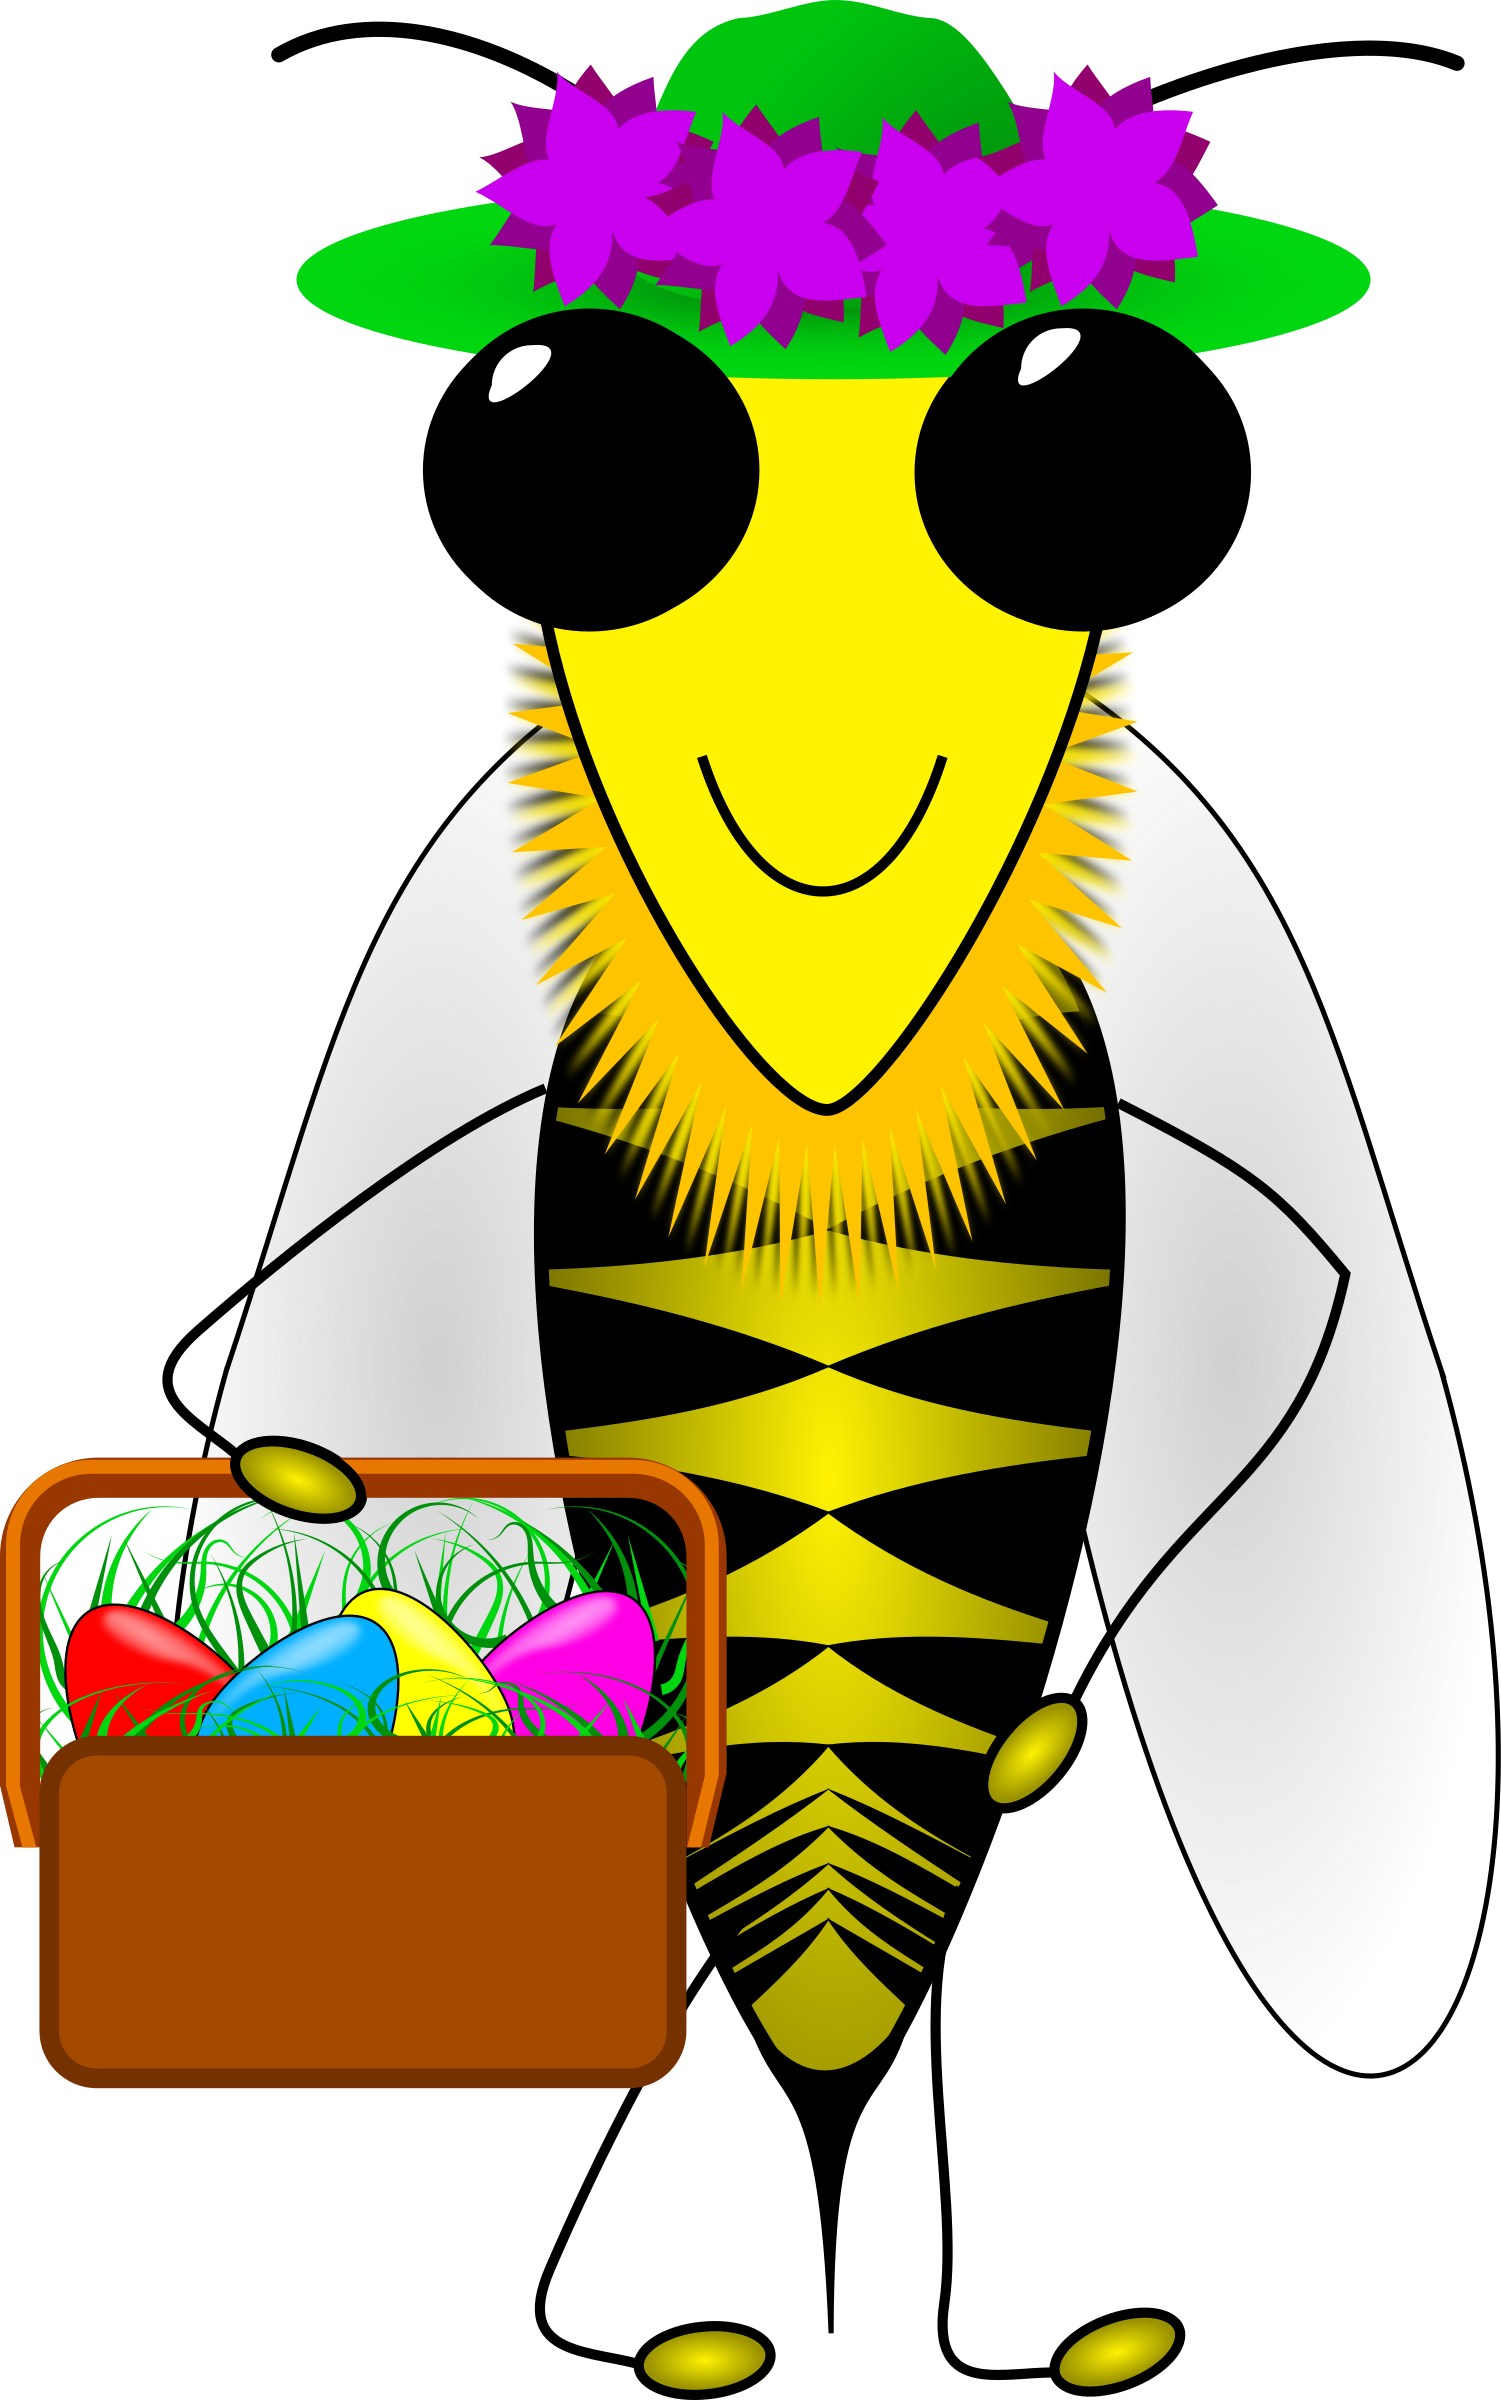 Bee big image png. Bees clipart easter